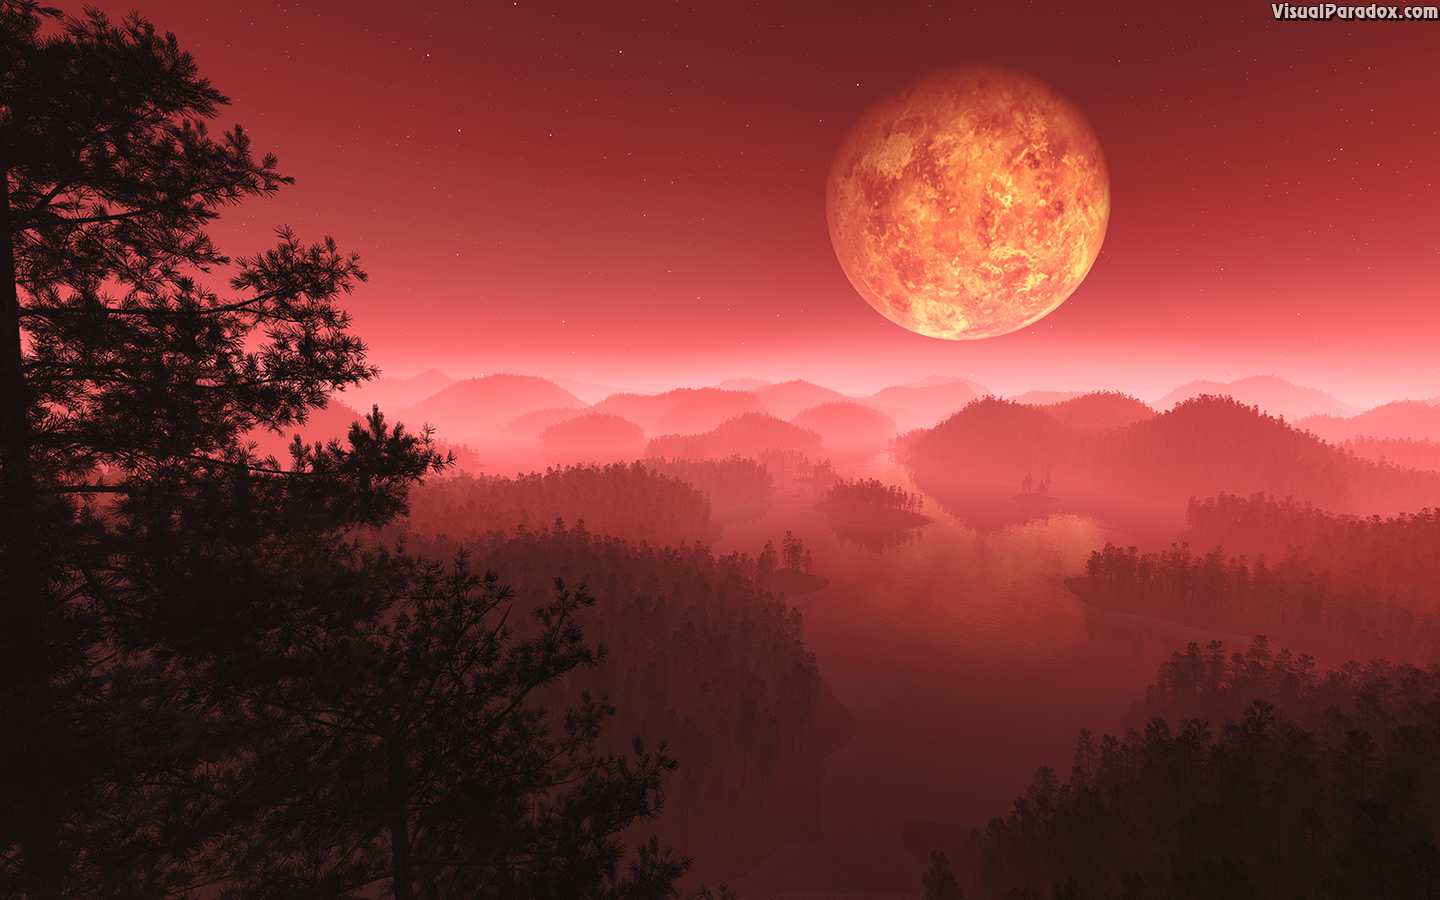 atmosphere, branches, dark, dusk, fantasy, fiery, fire-mist, fog, foot, glowing, hills, landscape, mist, moon, nature, night, orbit, planet, red, silhouette, sky, tree, twilight, venus, 3d, wallpaper